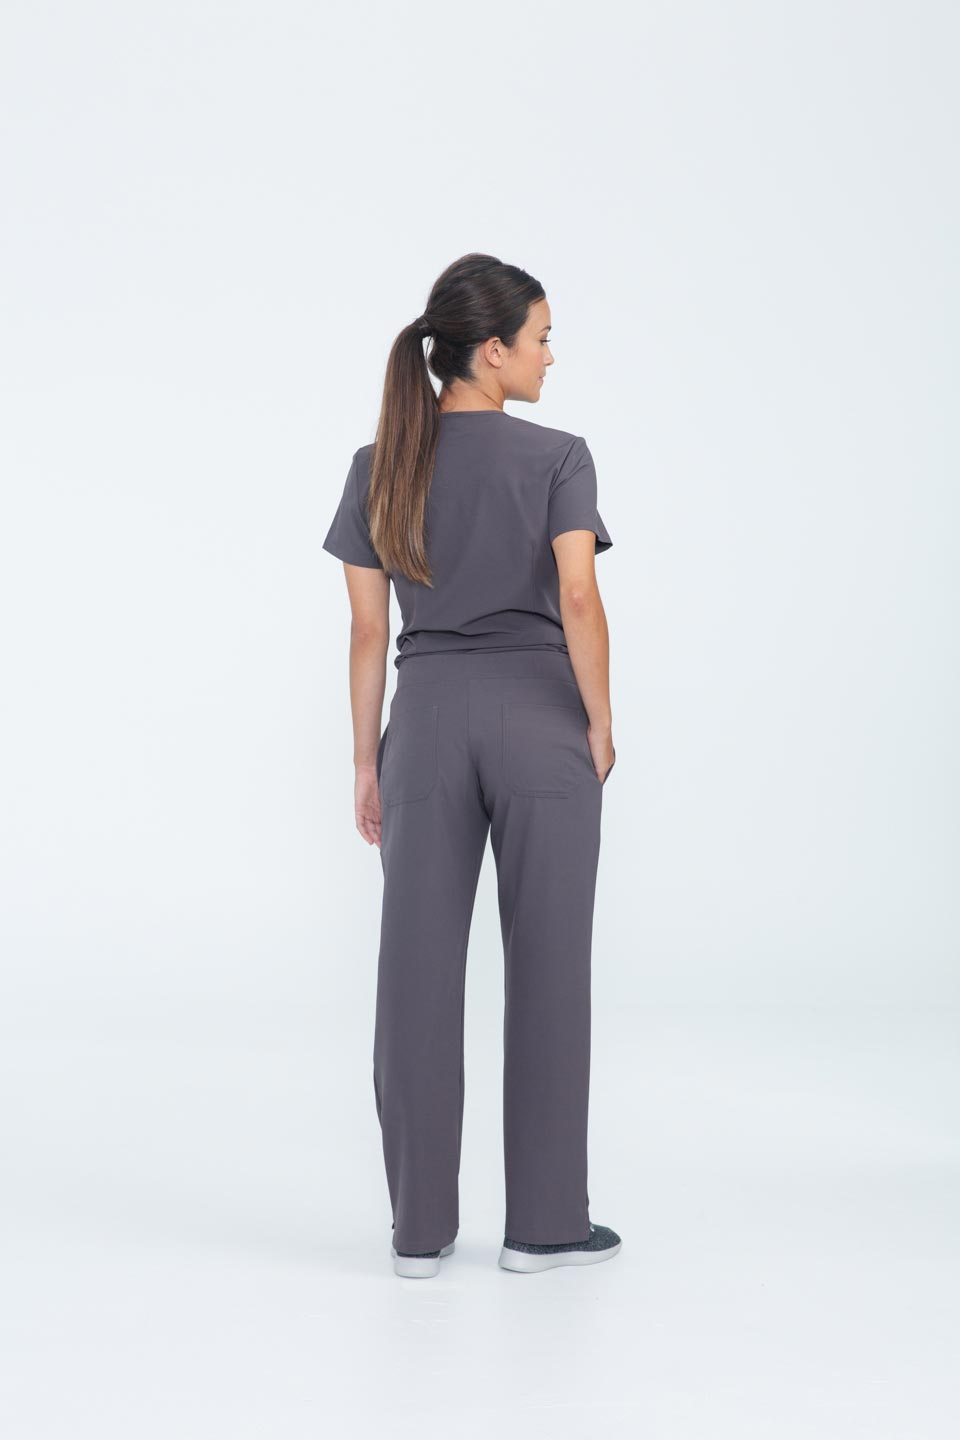 Kalea - Womens Bliss Scrub Pants - Gray